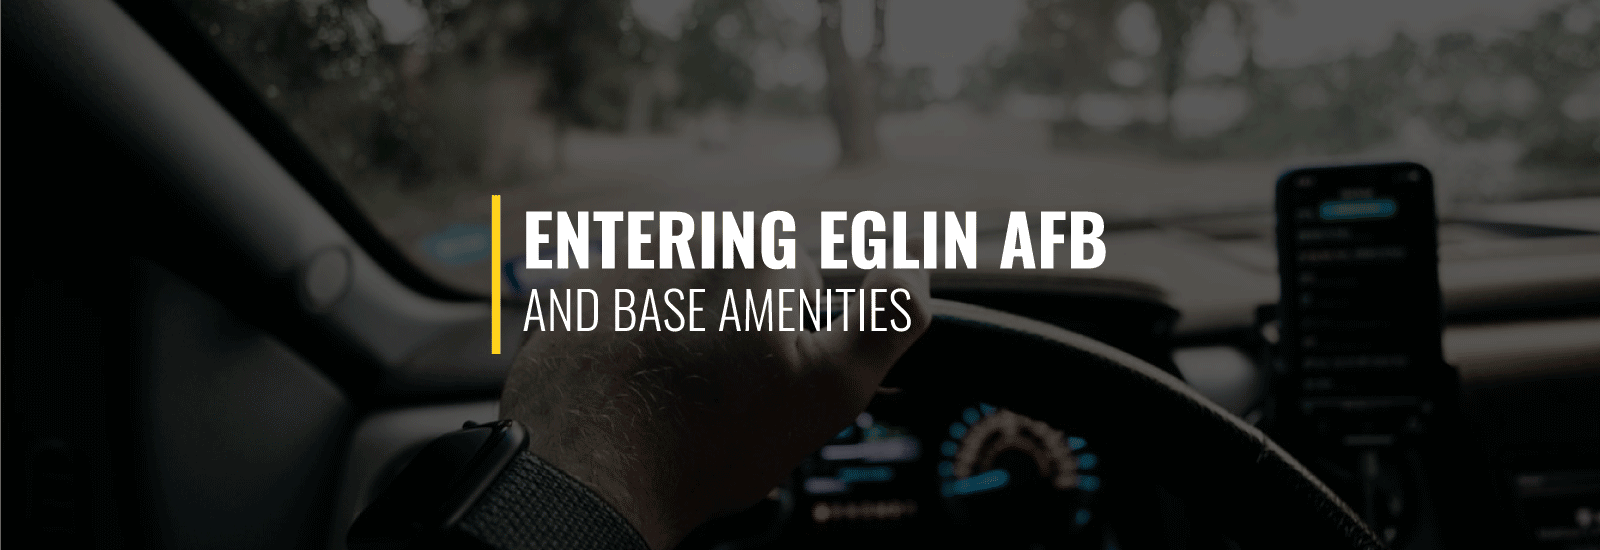 Entering Eglin AFB and Base Amenities